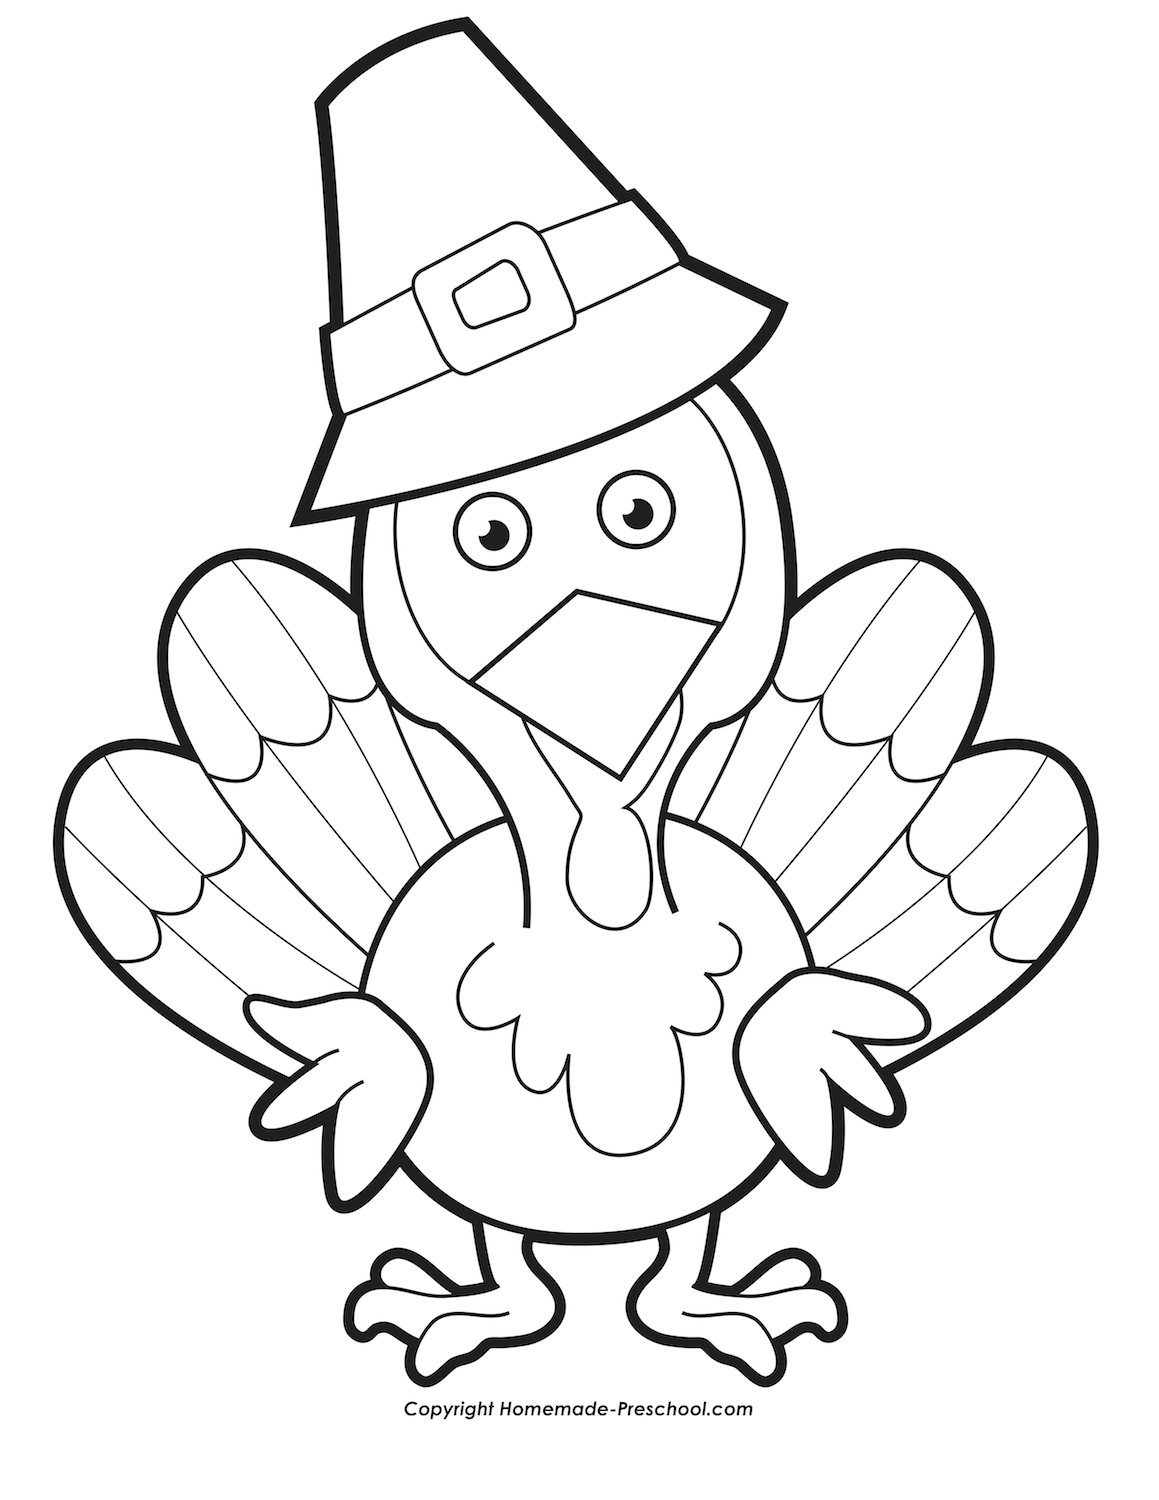 Thanksgiving Coloring Pages Online Review At Coloring Pages Klimafup Ekstrabladet Dk